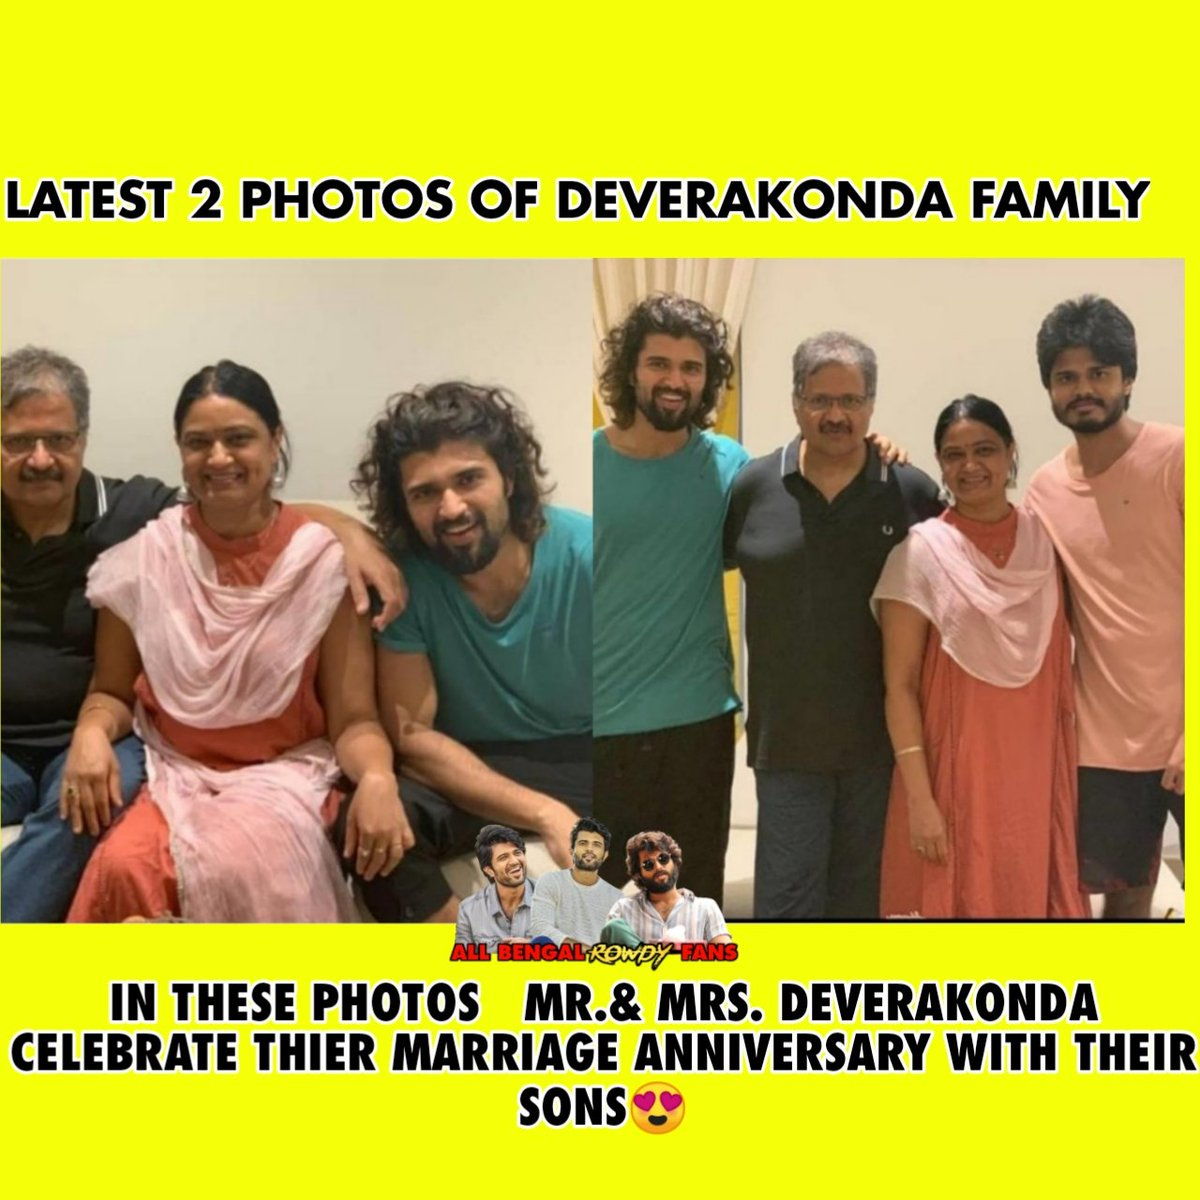 Latest Photos Of The Deverakonda Family #VijayDeverakonda @TheDeverakonda #DeverakondaFamily  Follow Us For More Trending Alert - #DearComradeTrendOnJuly25th pic.twitter.com/Nq1l53WaG4